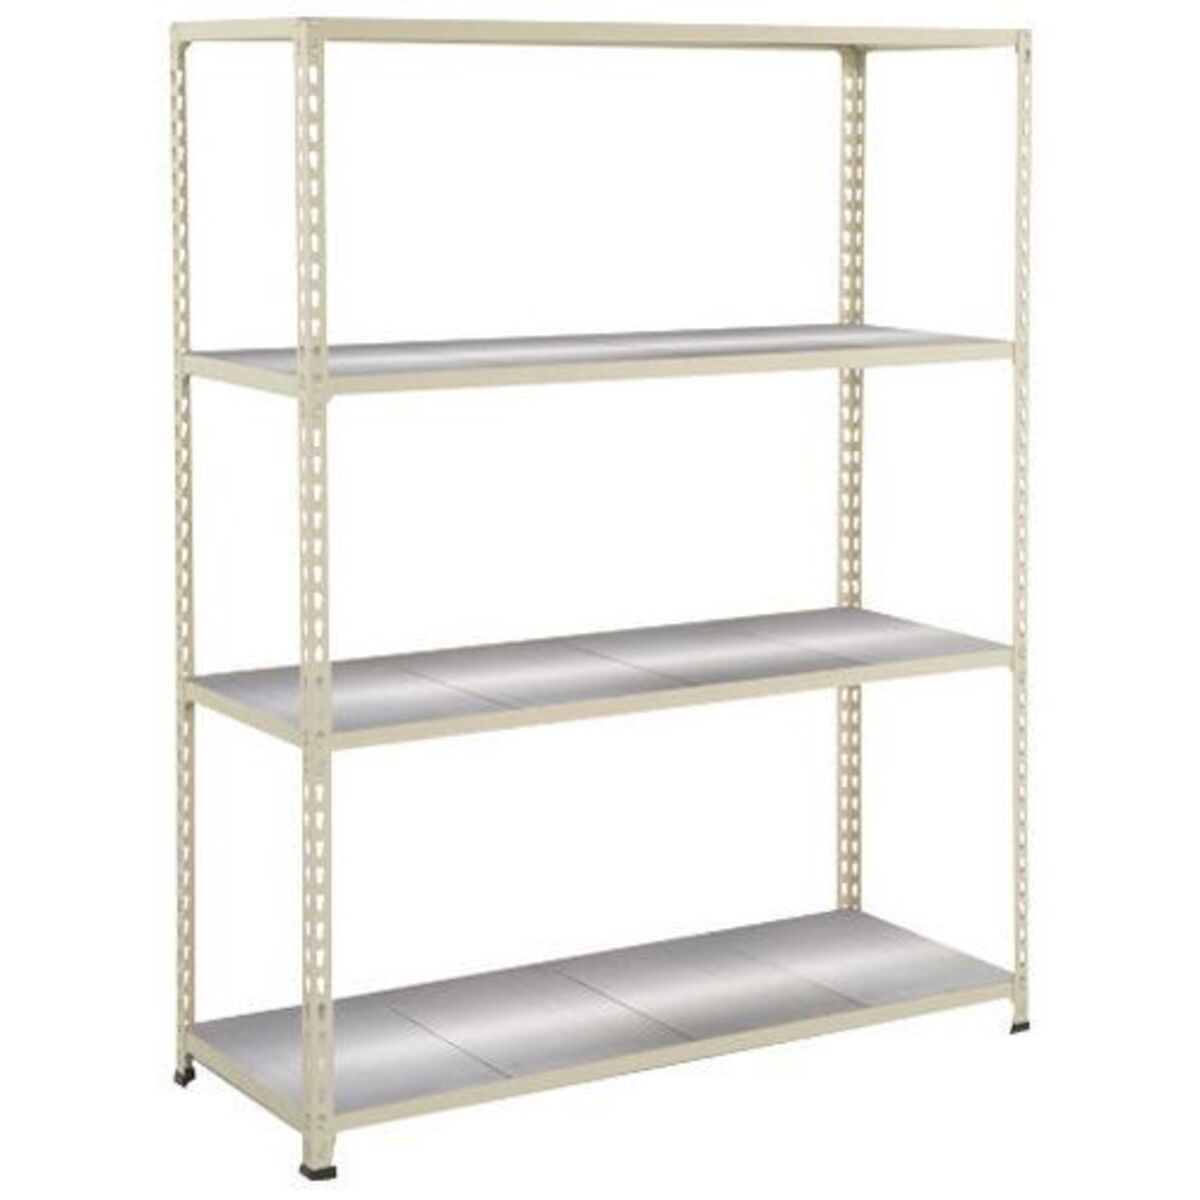 Rayonnage Rapid 2 4 tablettes metal 1980x1220x455 gris